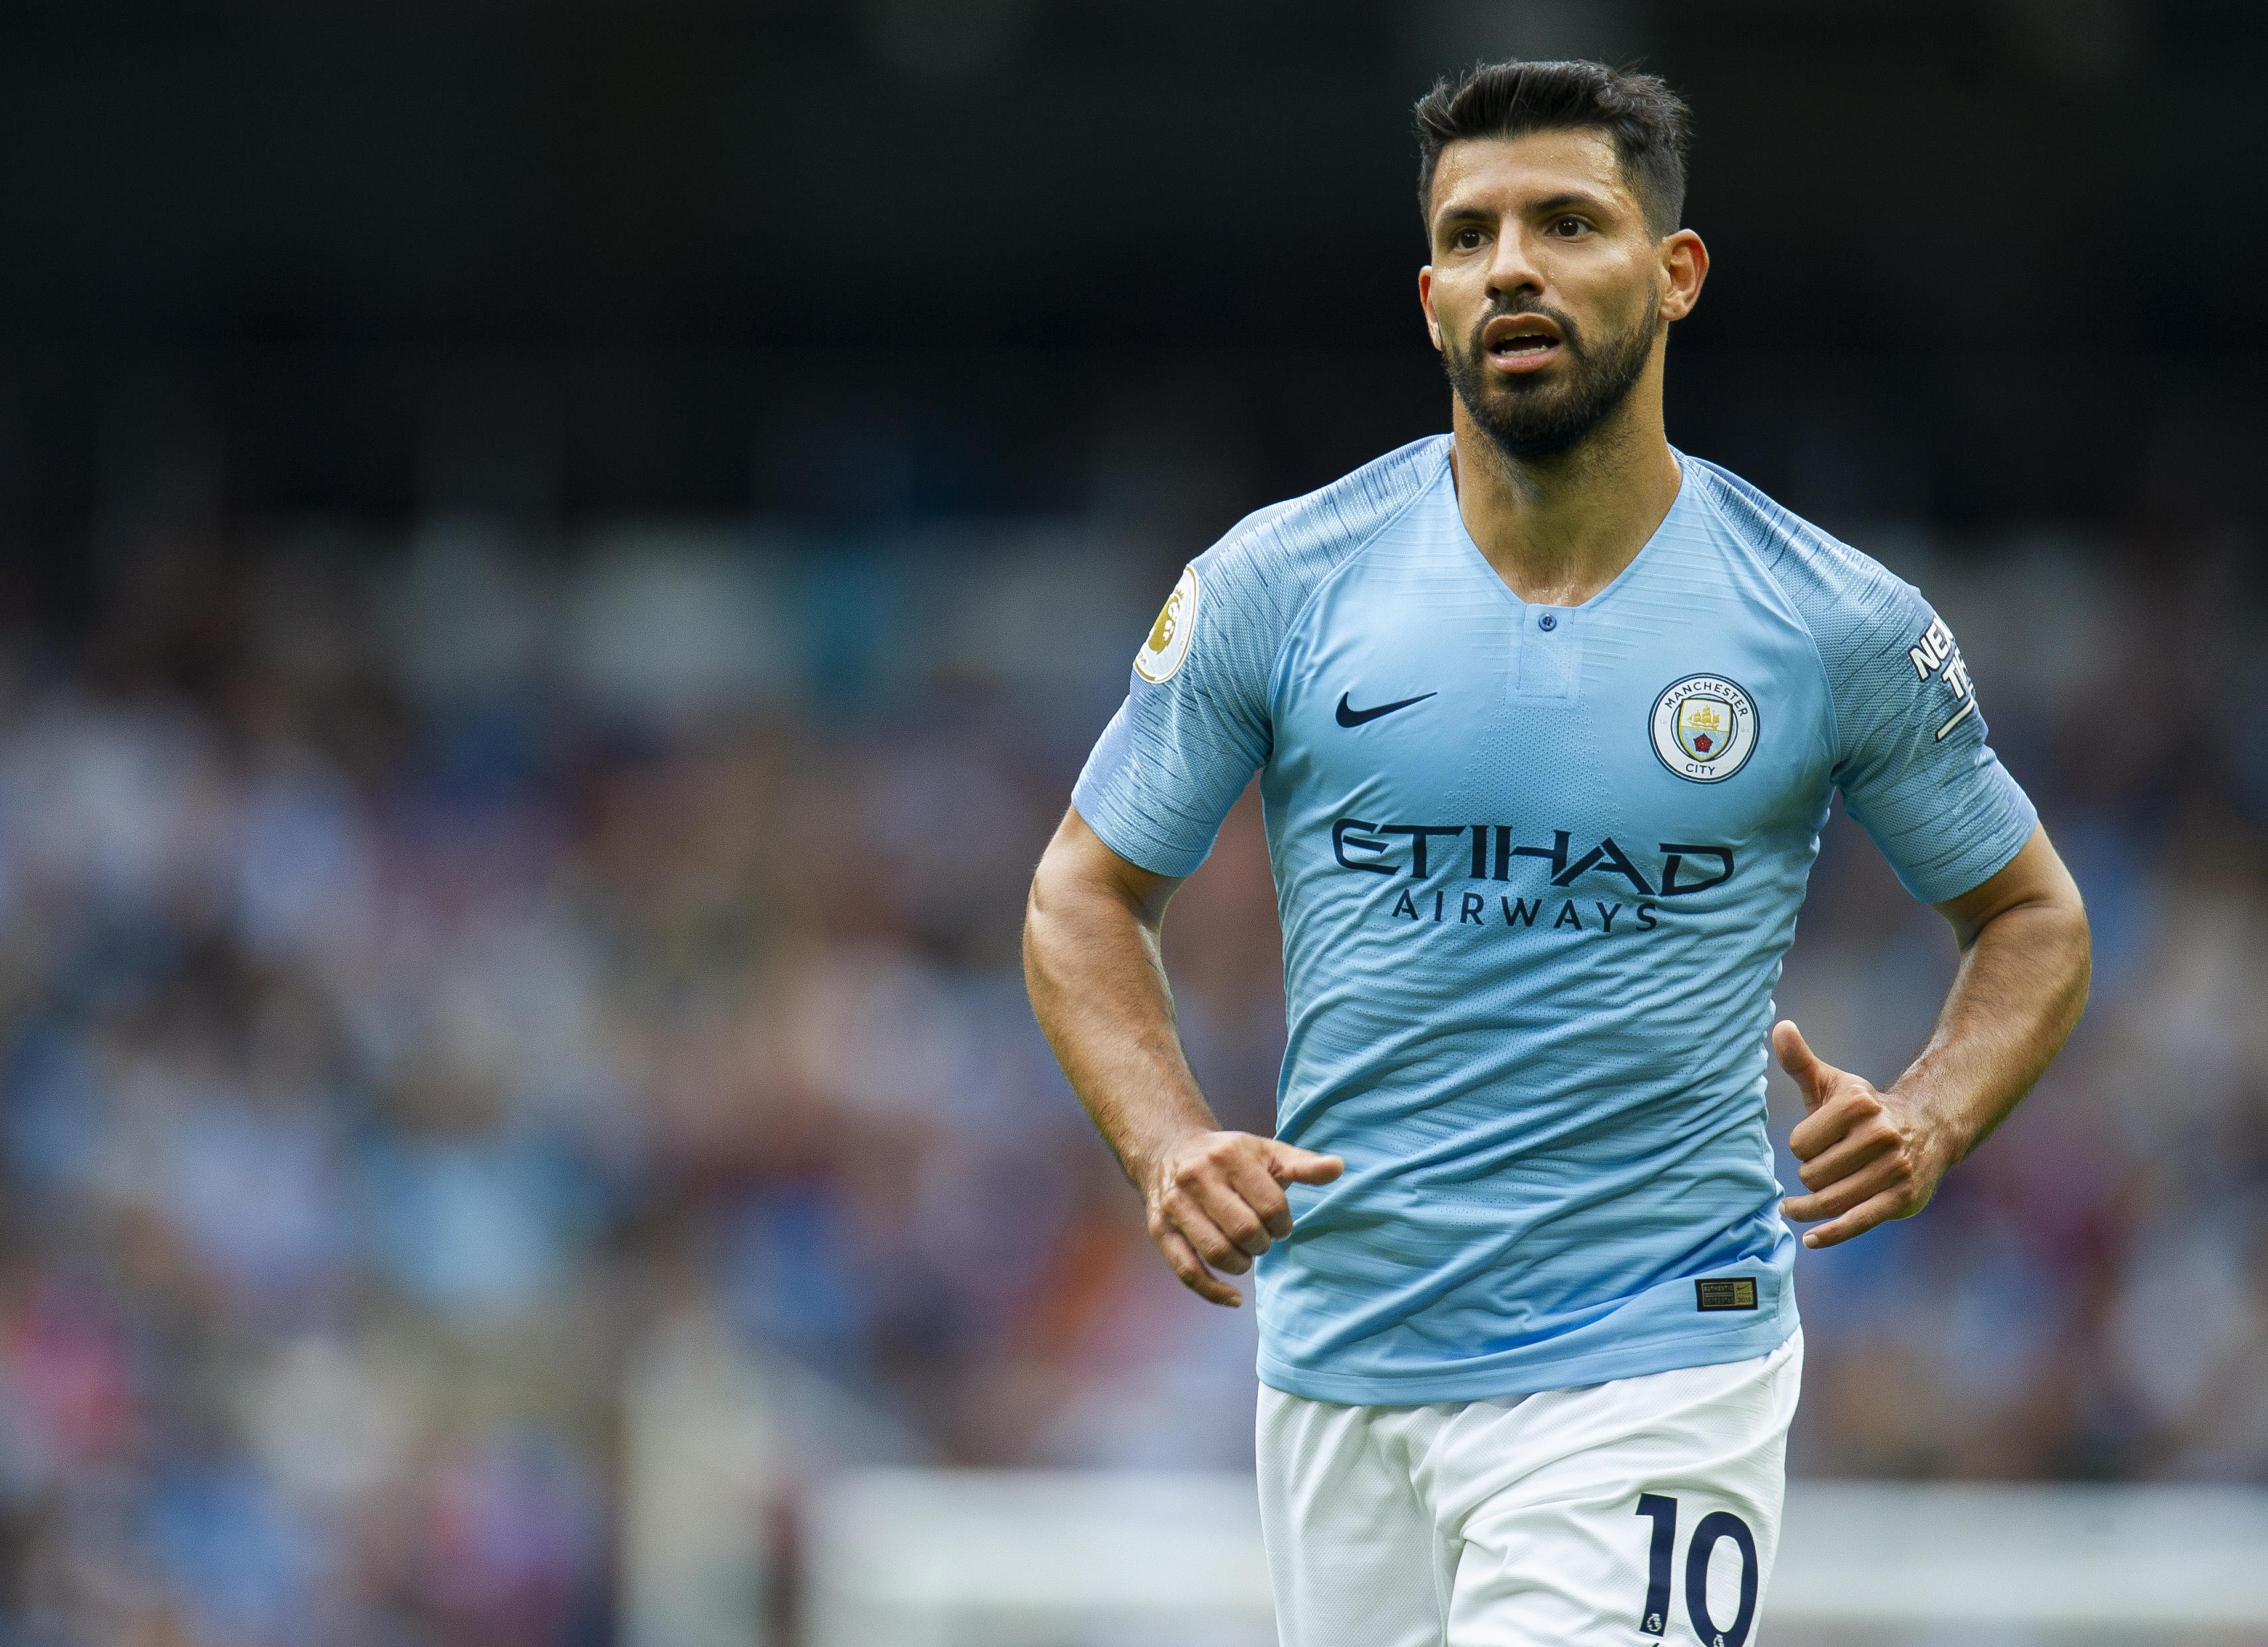 Sergio Aguero's delightful dink against Huddersfield could easily claim the prize